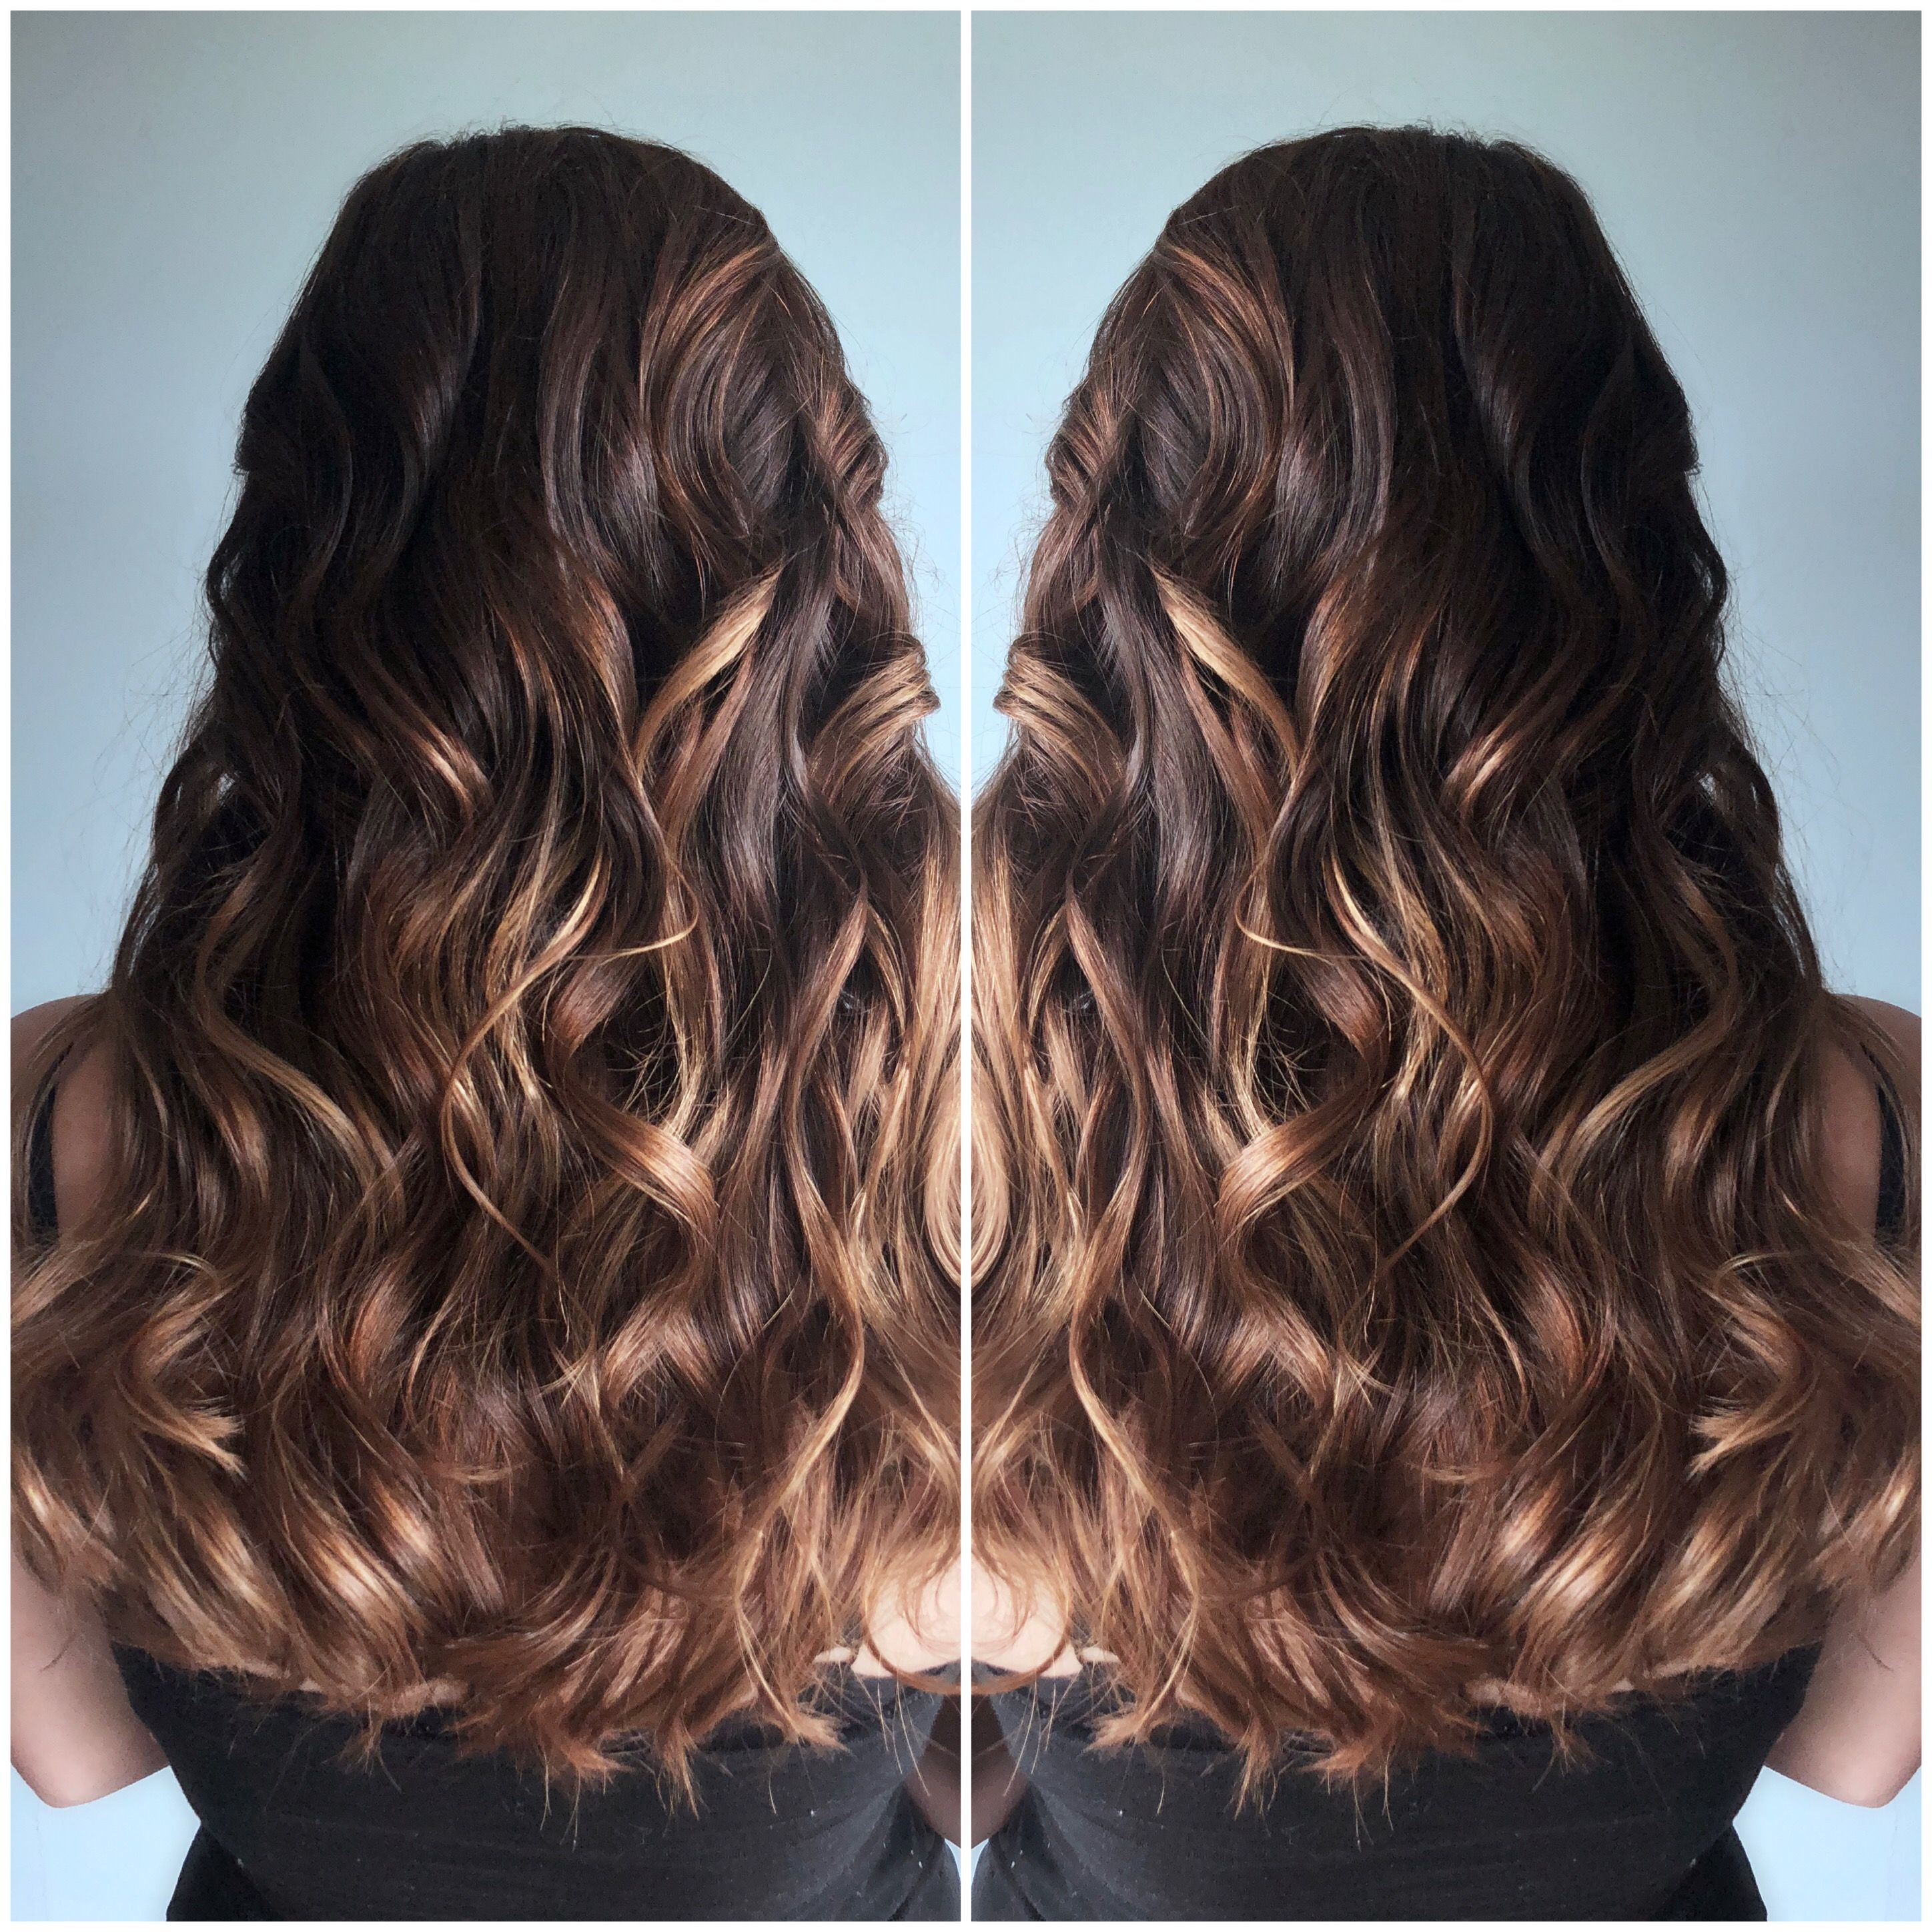 Balayage Highlight And Style Curled Brown Hair Balayage Dark Hair With Highlights Brown Hair With Highlights And Lowlights